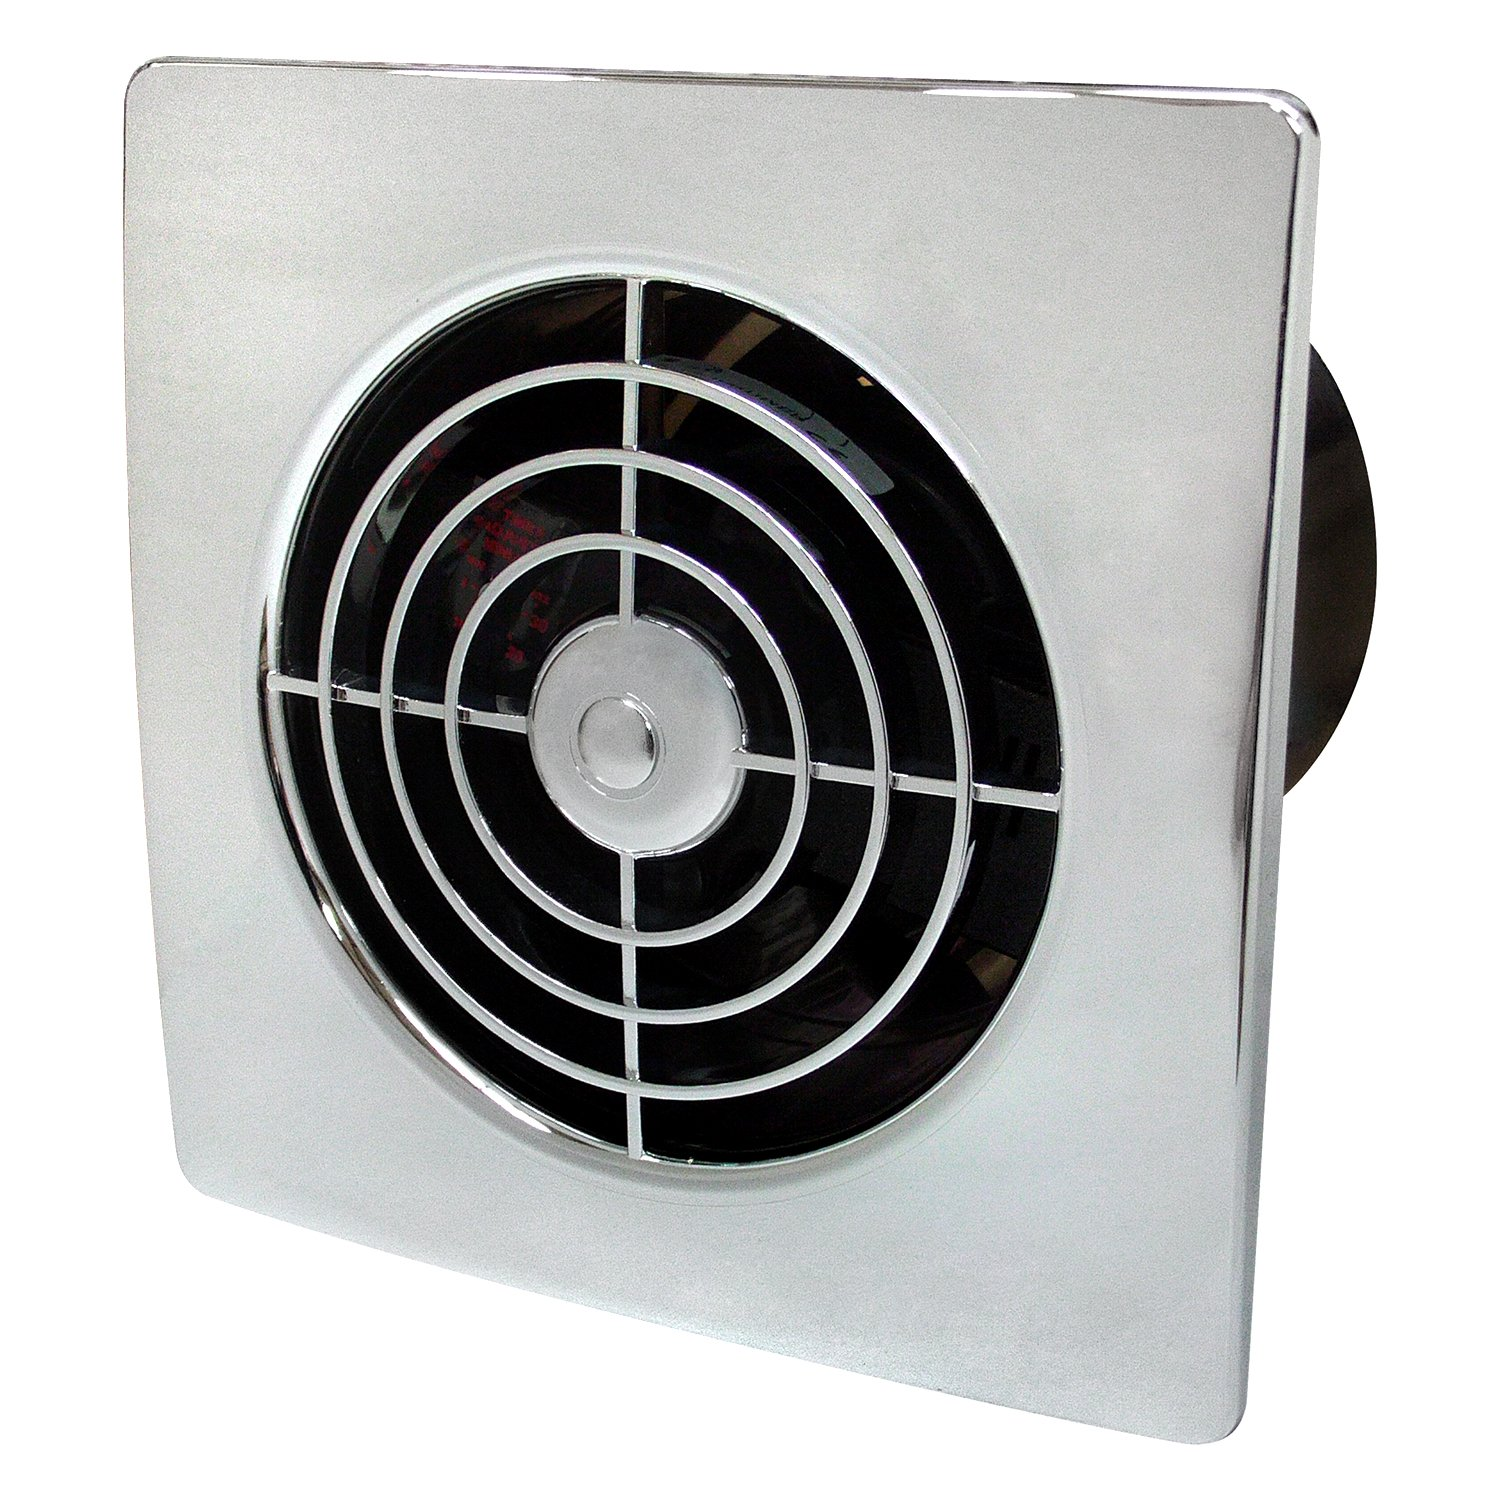 Manrose 100mm Low Profile Extractor Fan/Timer - Chrome LP100STC